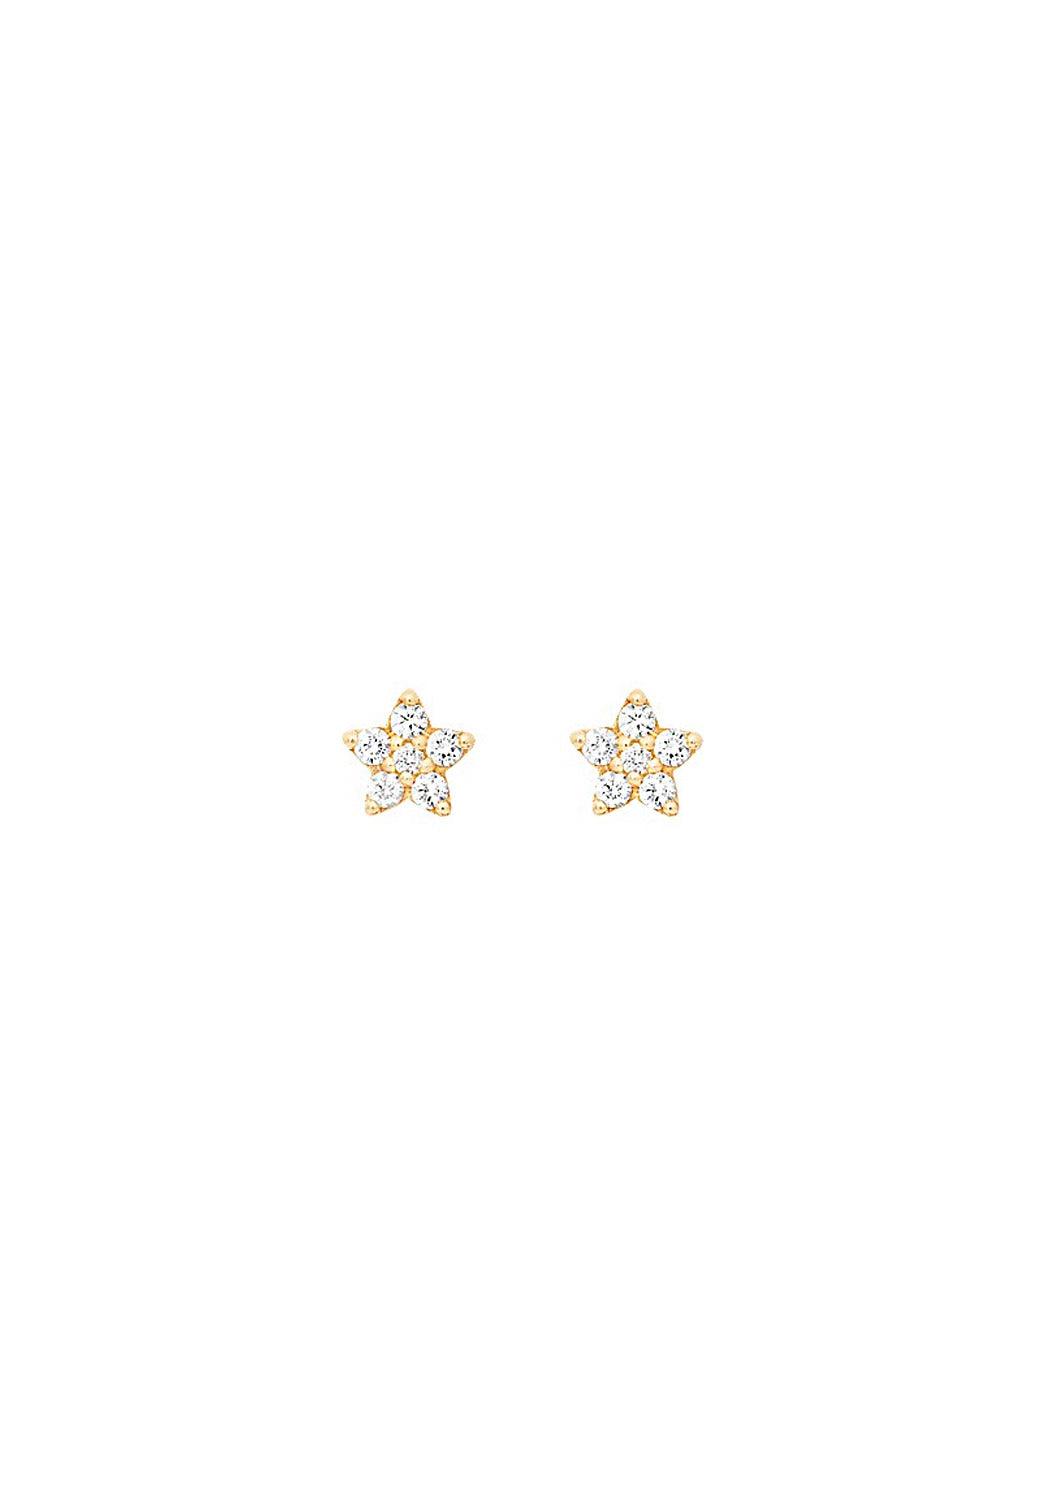 OLE LYNGGAARD Shooting Star Diamond Studs .21ctw (Pair) | Small